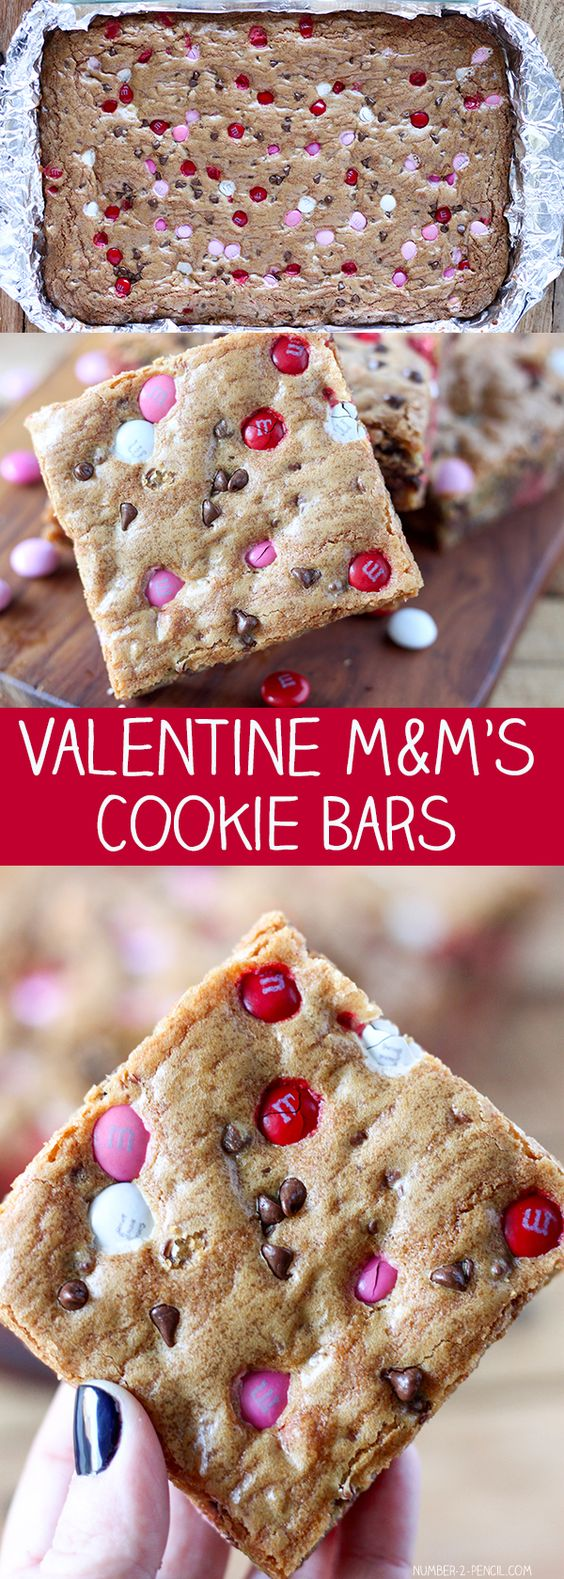 M&M'S Valentine's Day Cookie Bars.